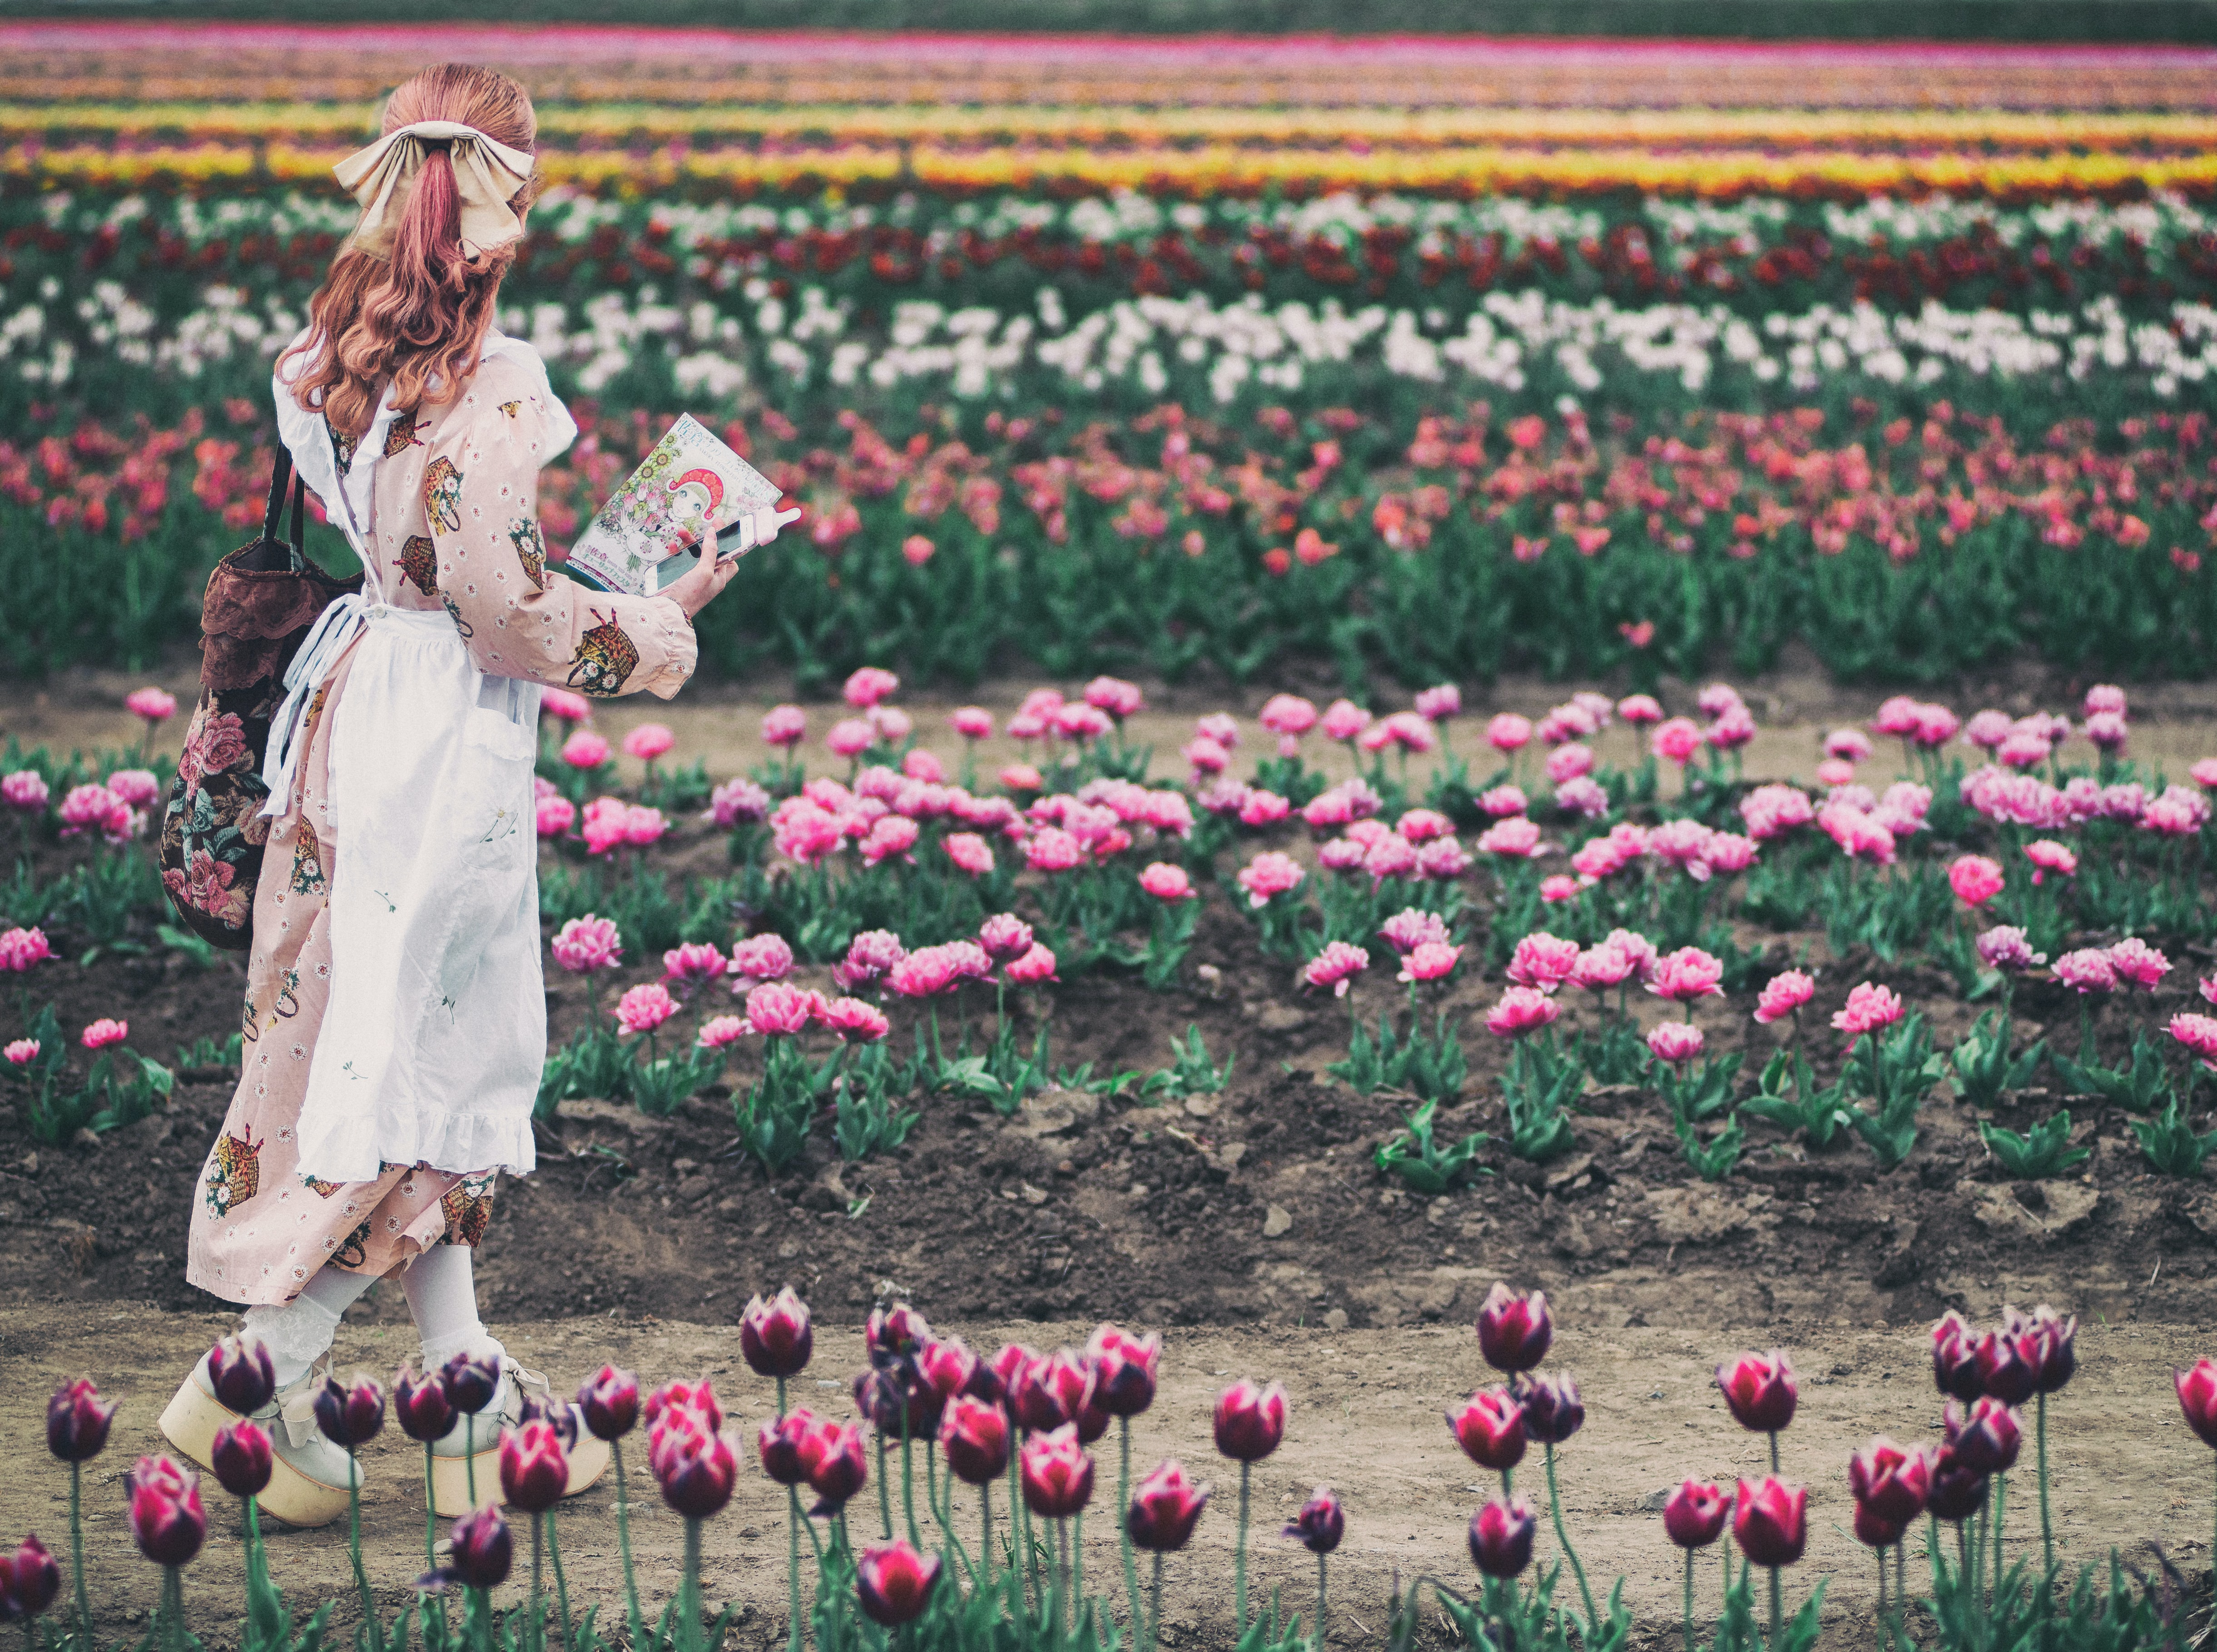 Woman Walking Near Field Of Tulip Flower At Day Time